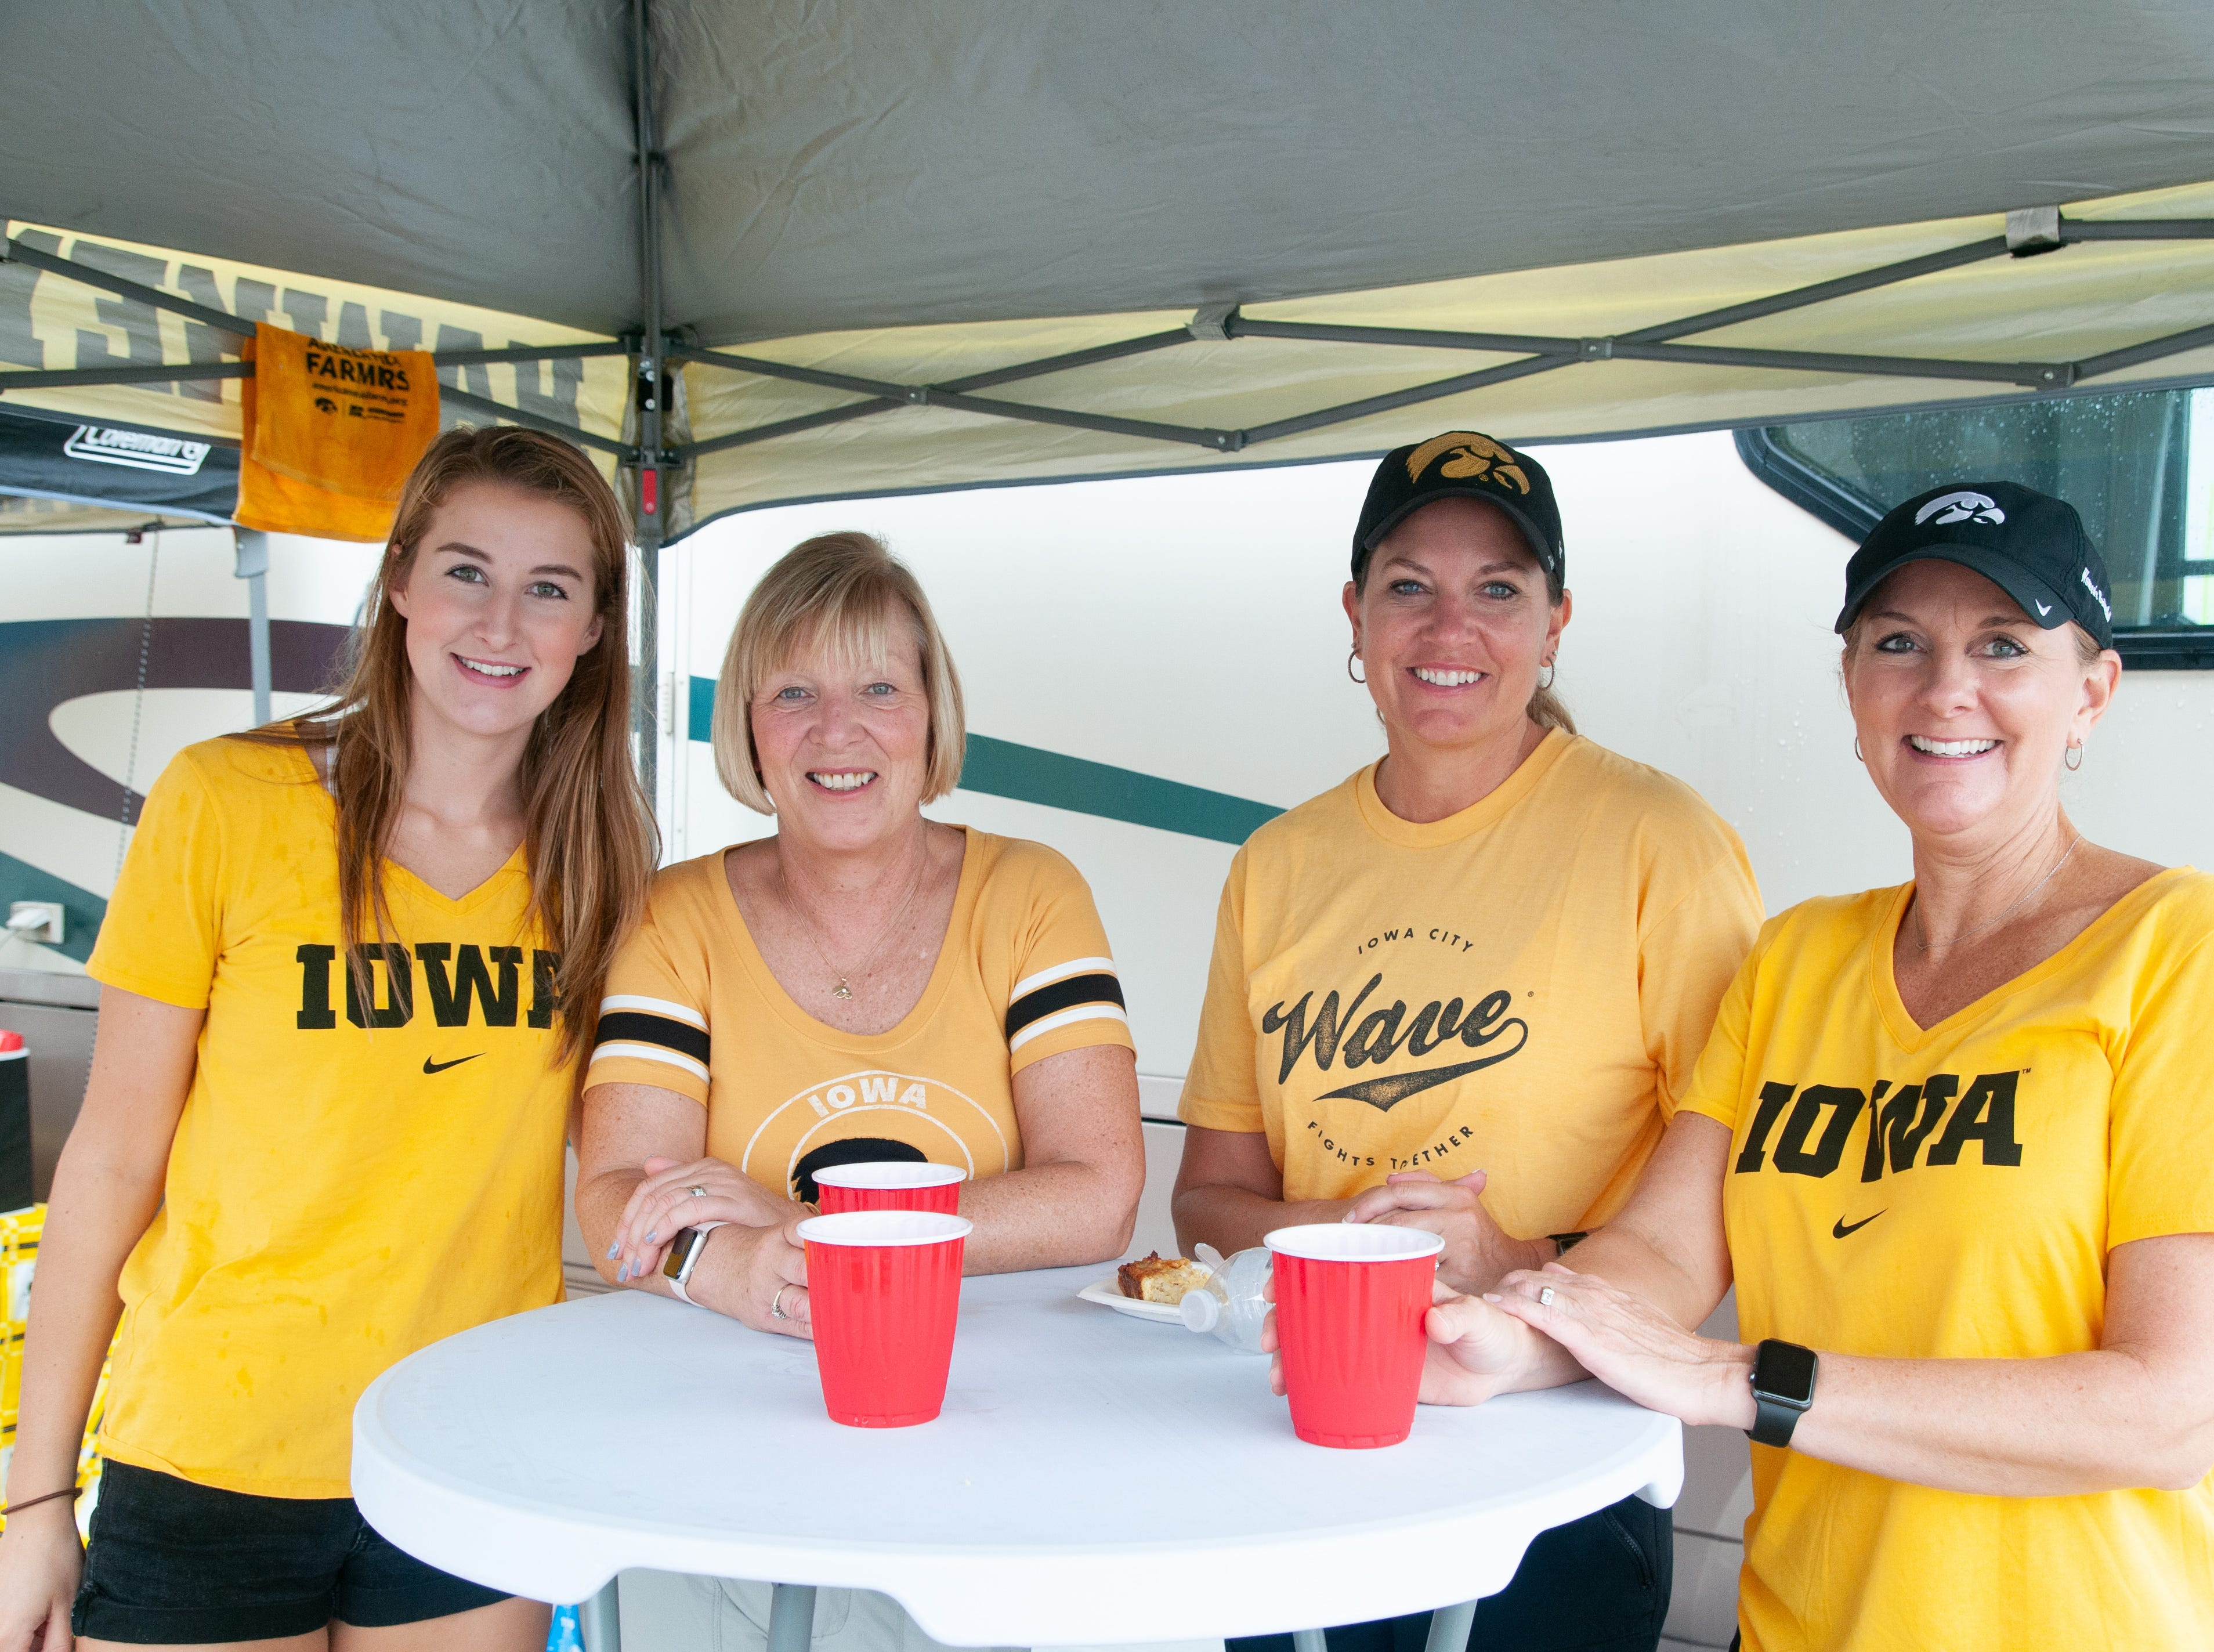 Beth Jamison, 47, (left), Chrissy Westendorf, 47, Linda Bergdale, 56, and Emily Burtch, 18, Saturday, Sept. 1, 2018, while tailgating before the Iowa game against Northern Illinois in Iowa City.